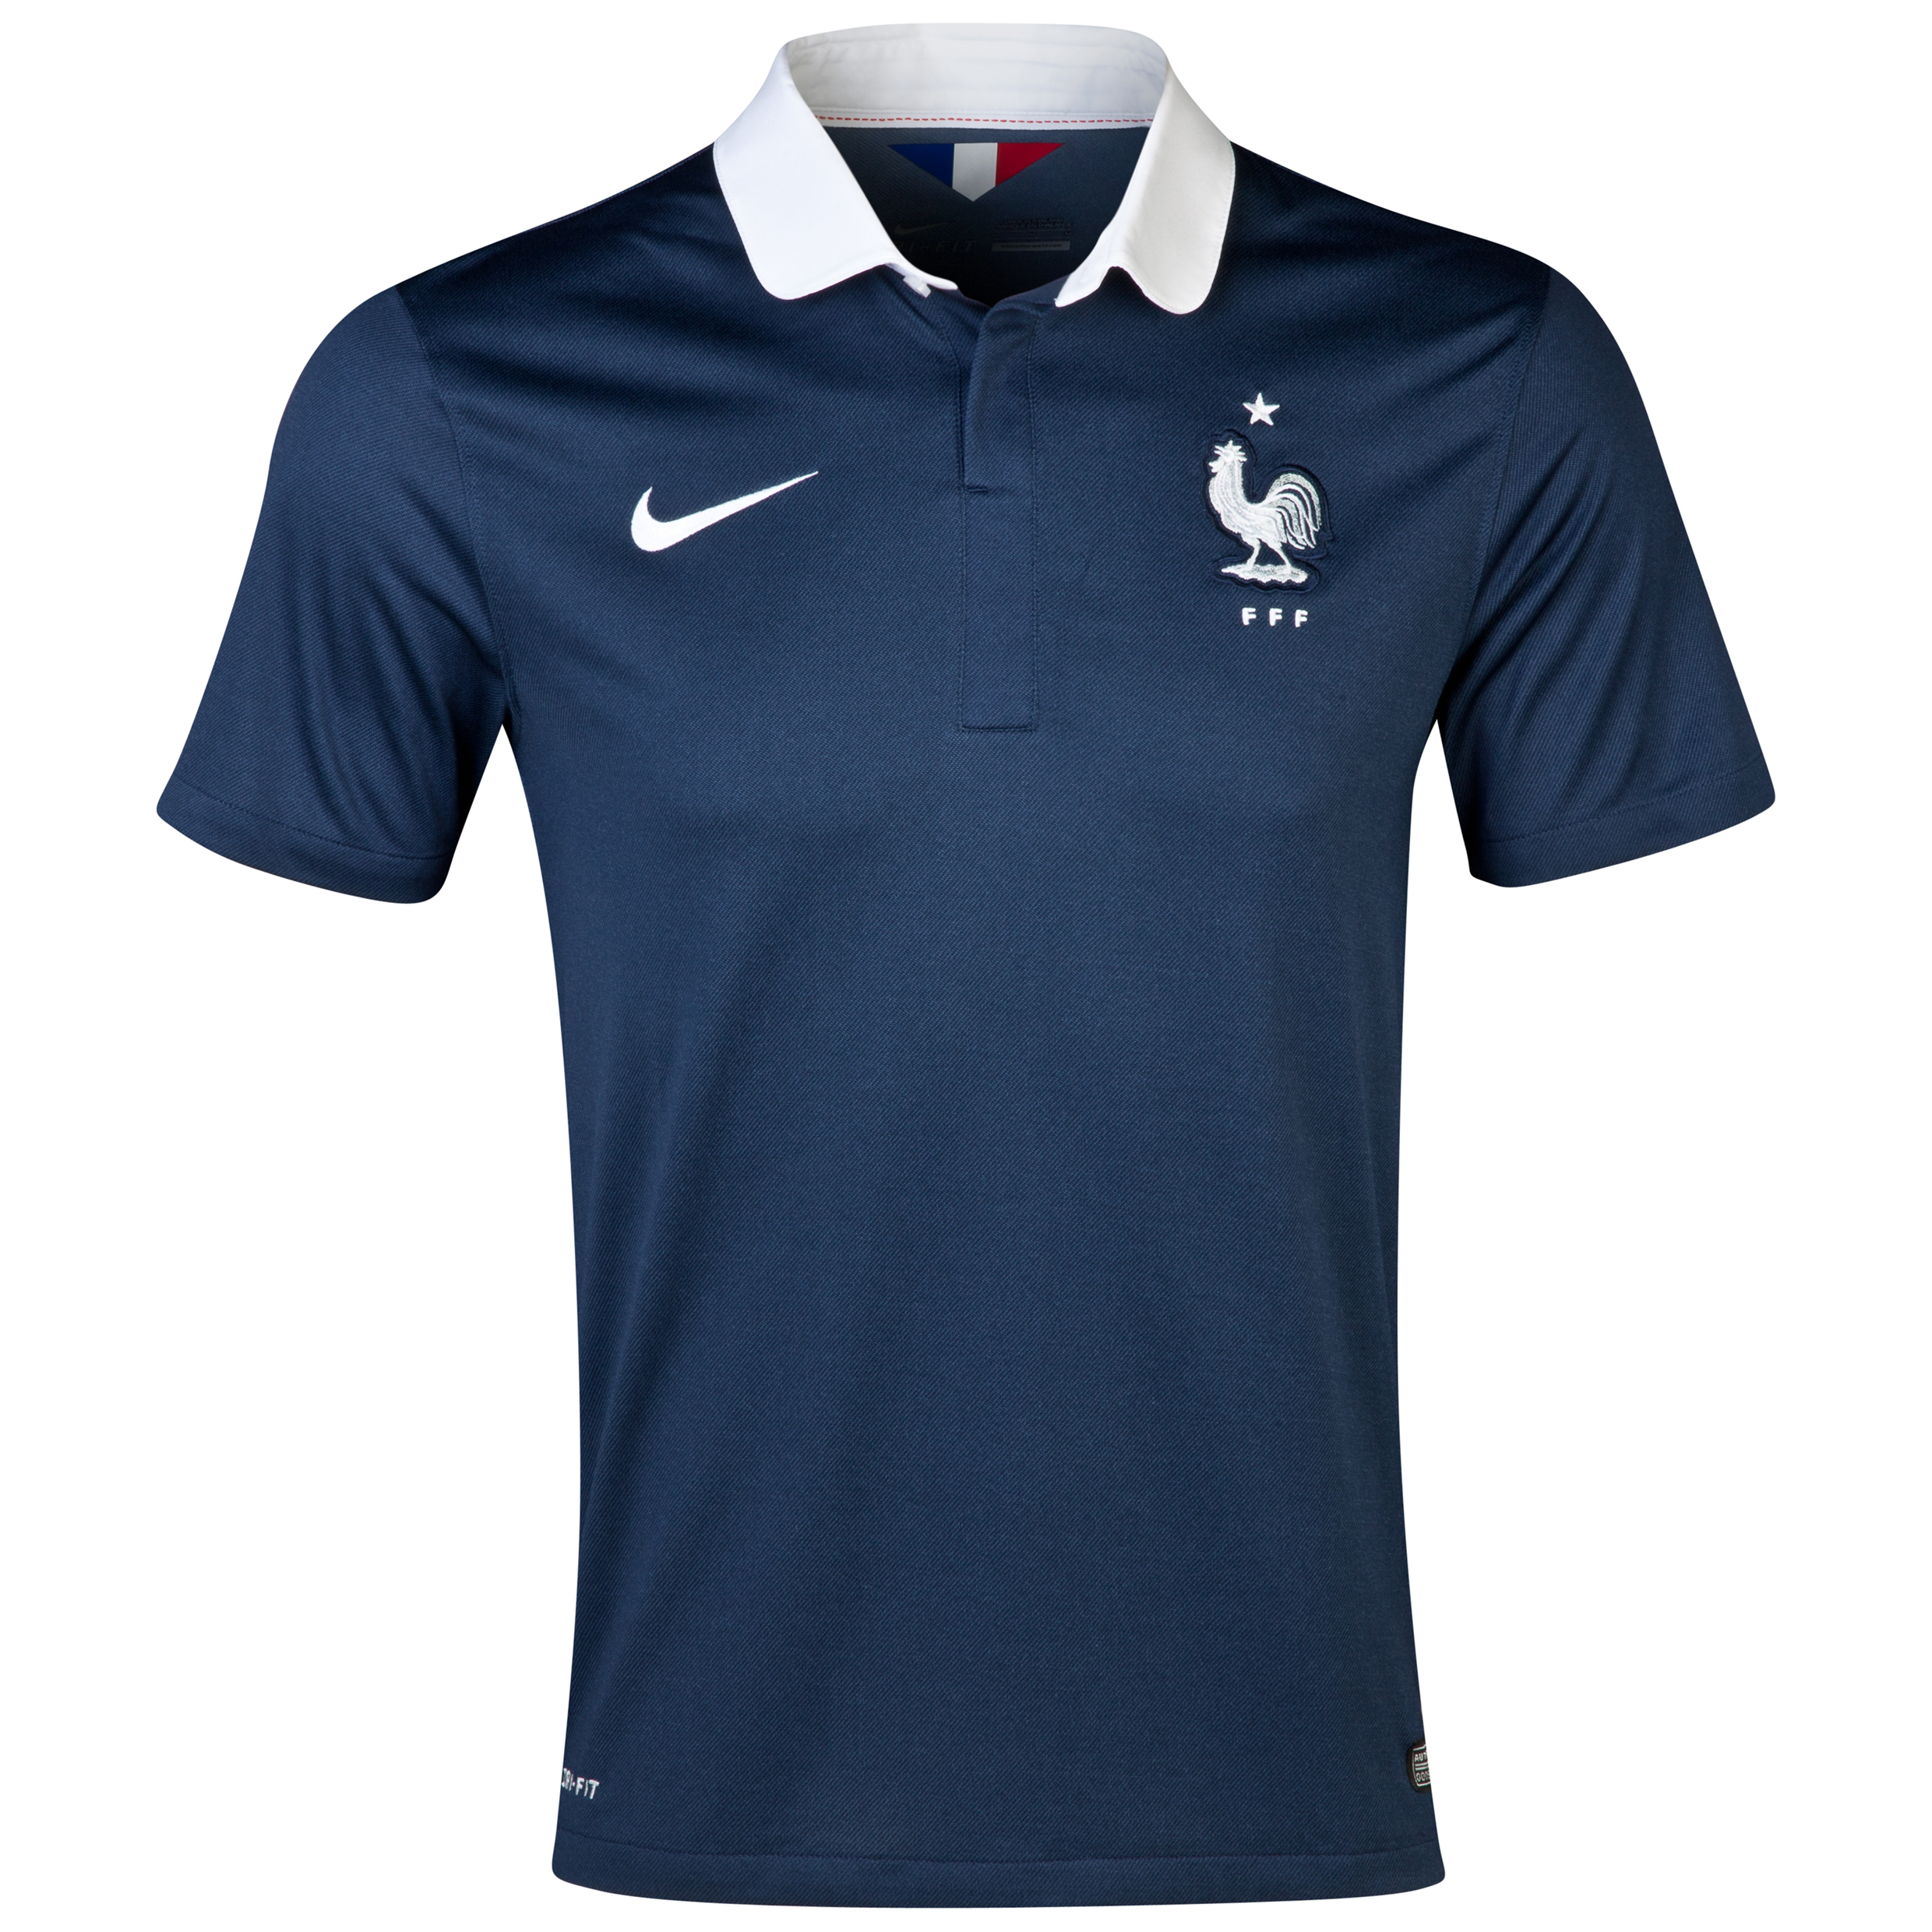 France Home Shirt 2014/15 Navy